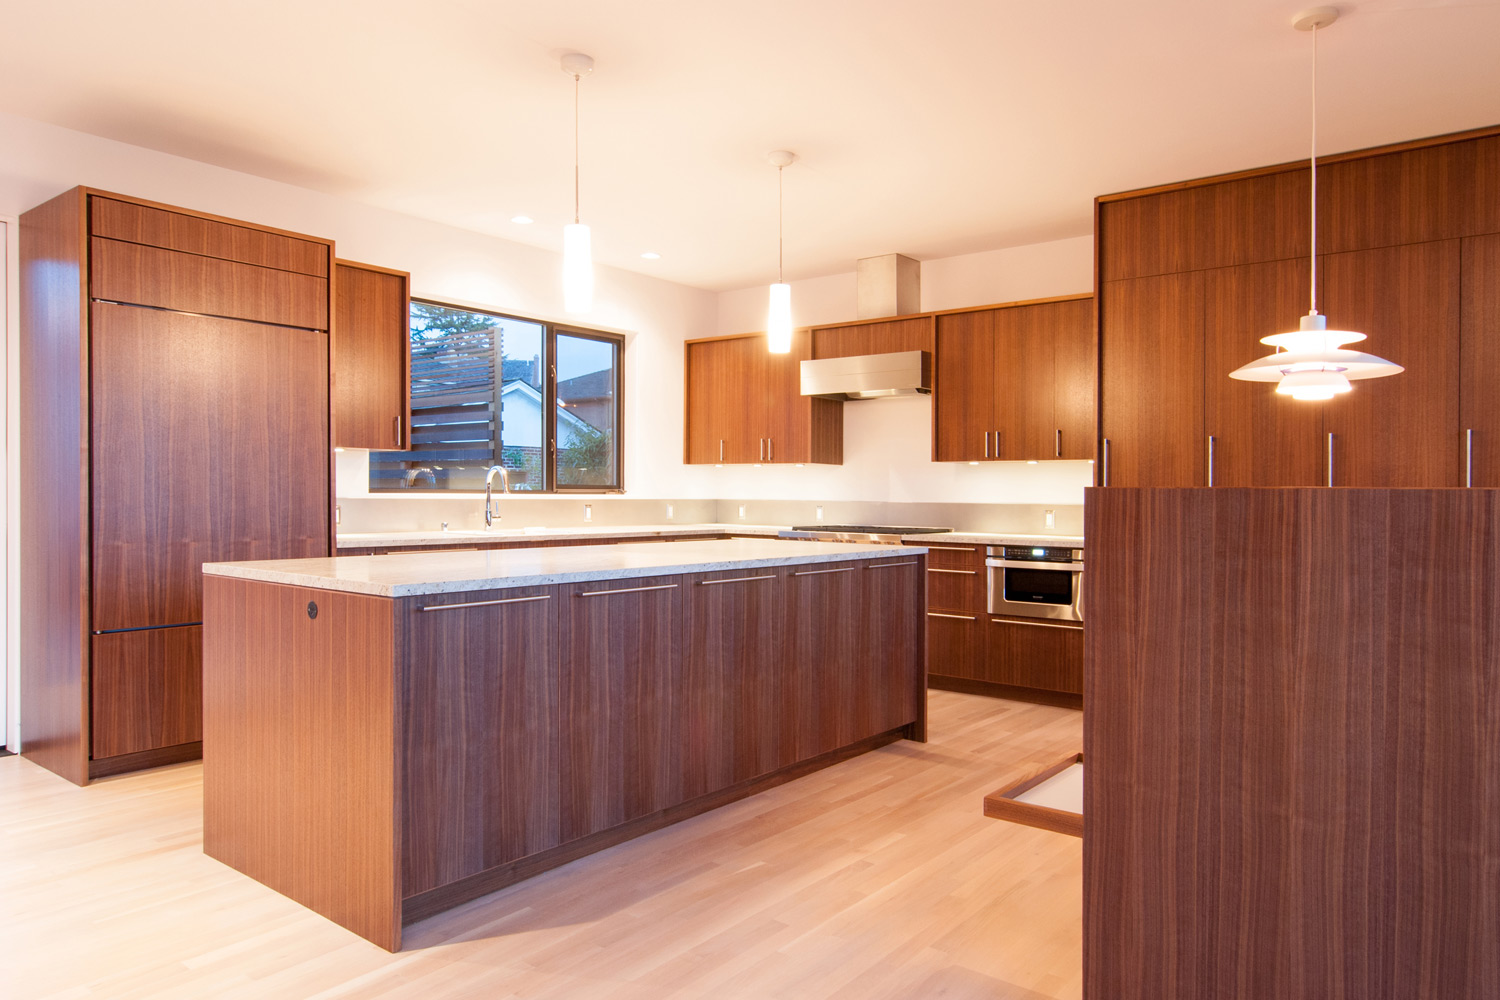 09 BUILD-LLC-Magnolia-Kitchen-01.jpg